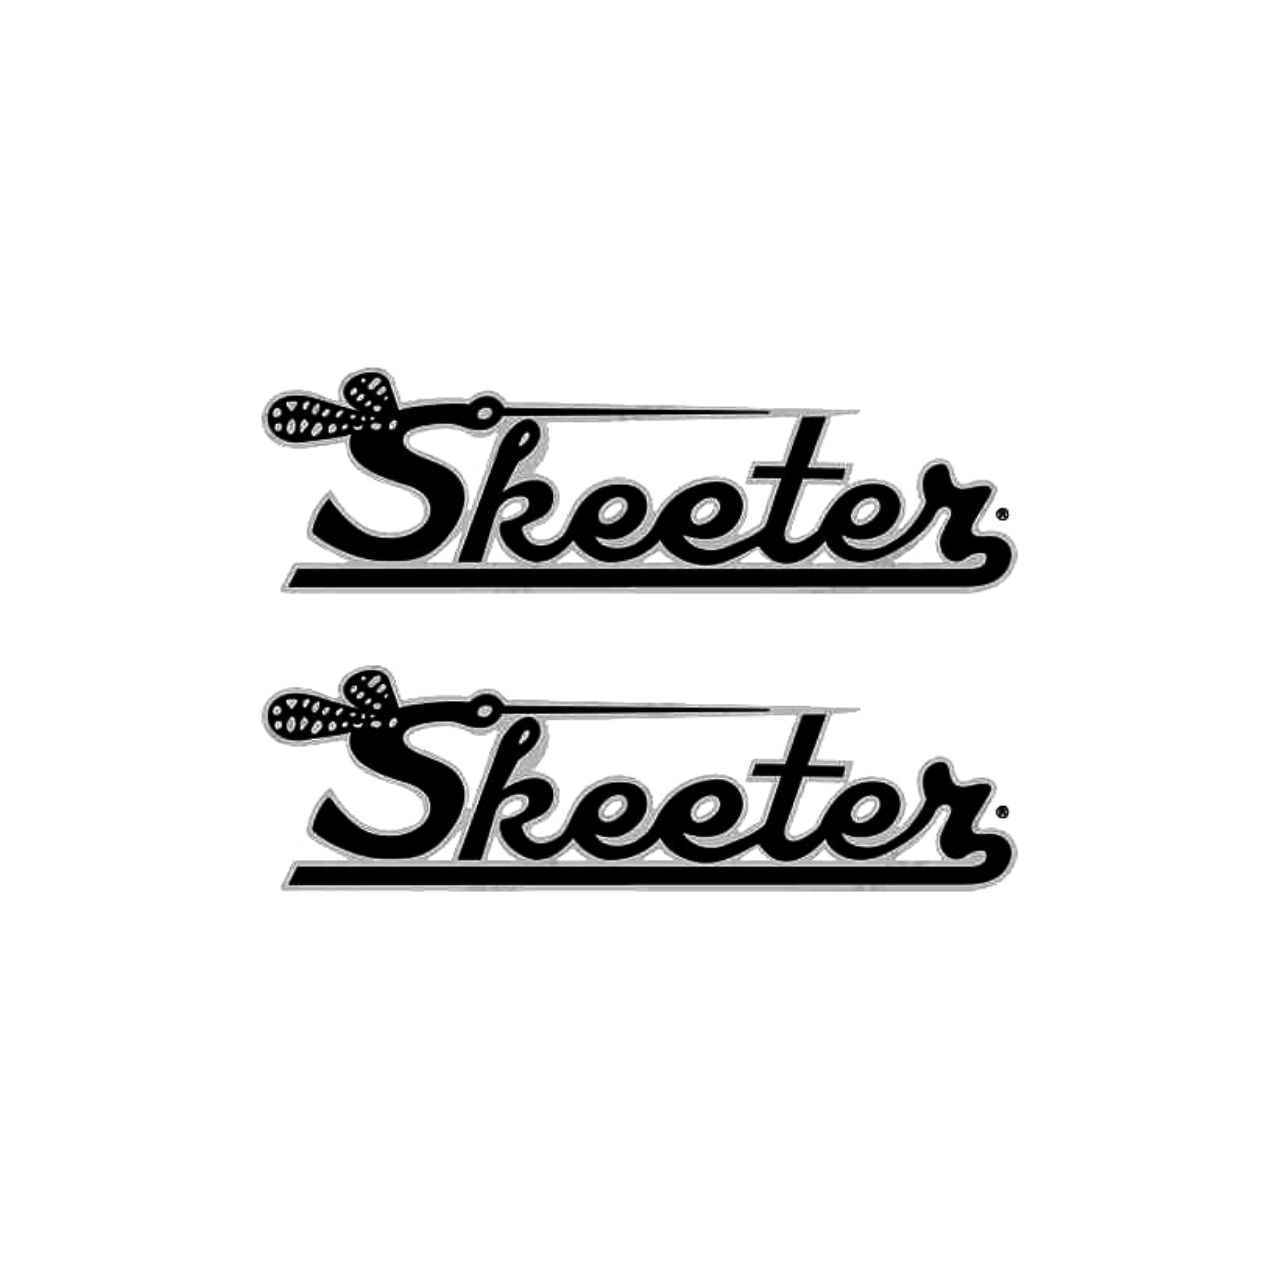 Skeeter Style 2 Boat Kit Decal Sticker.